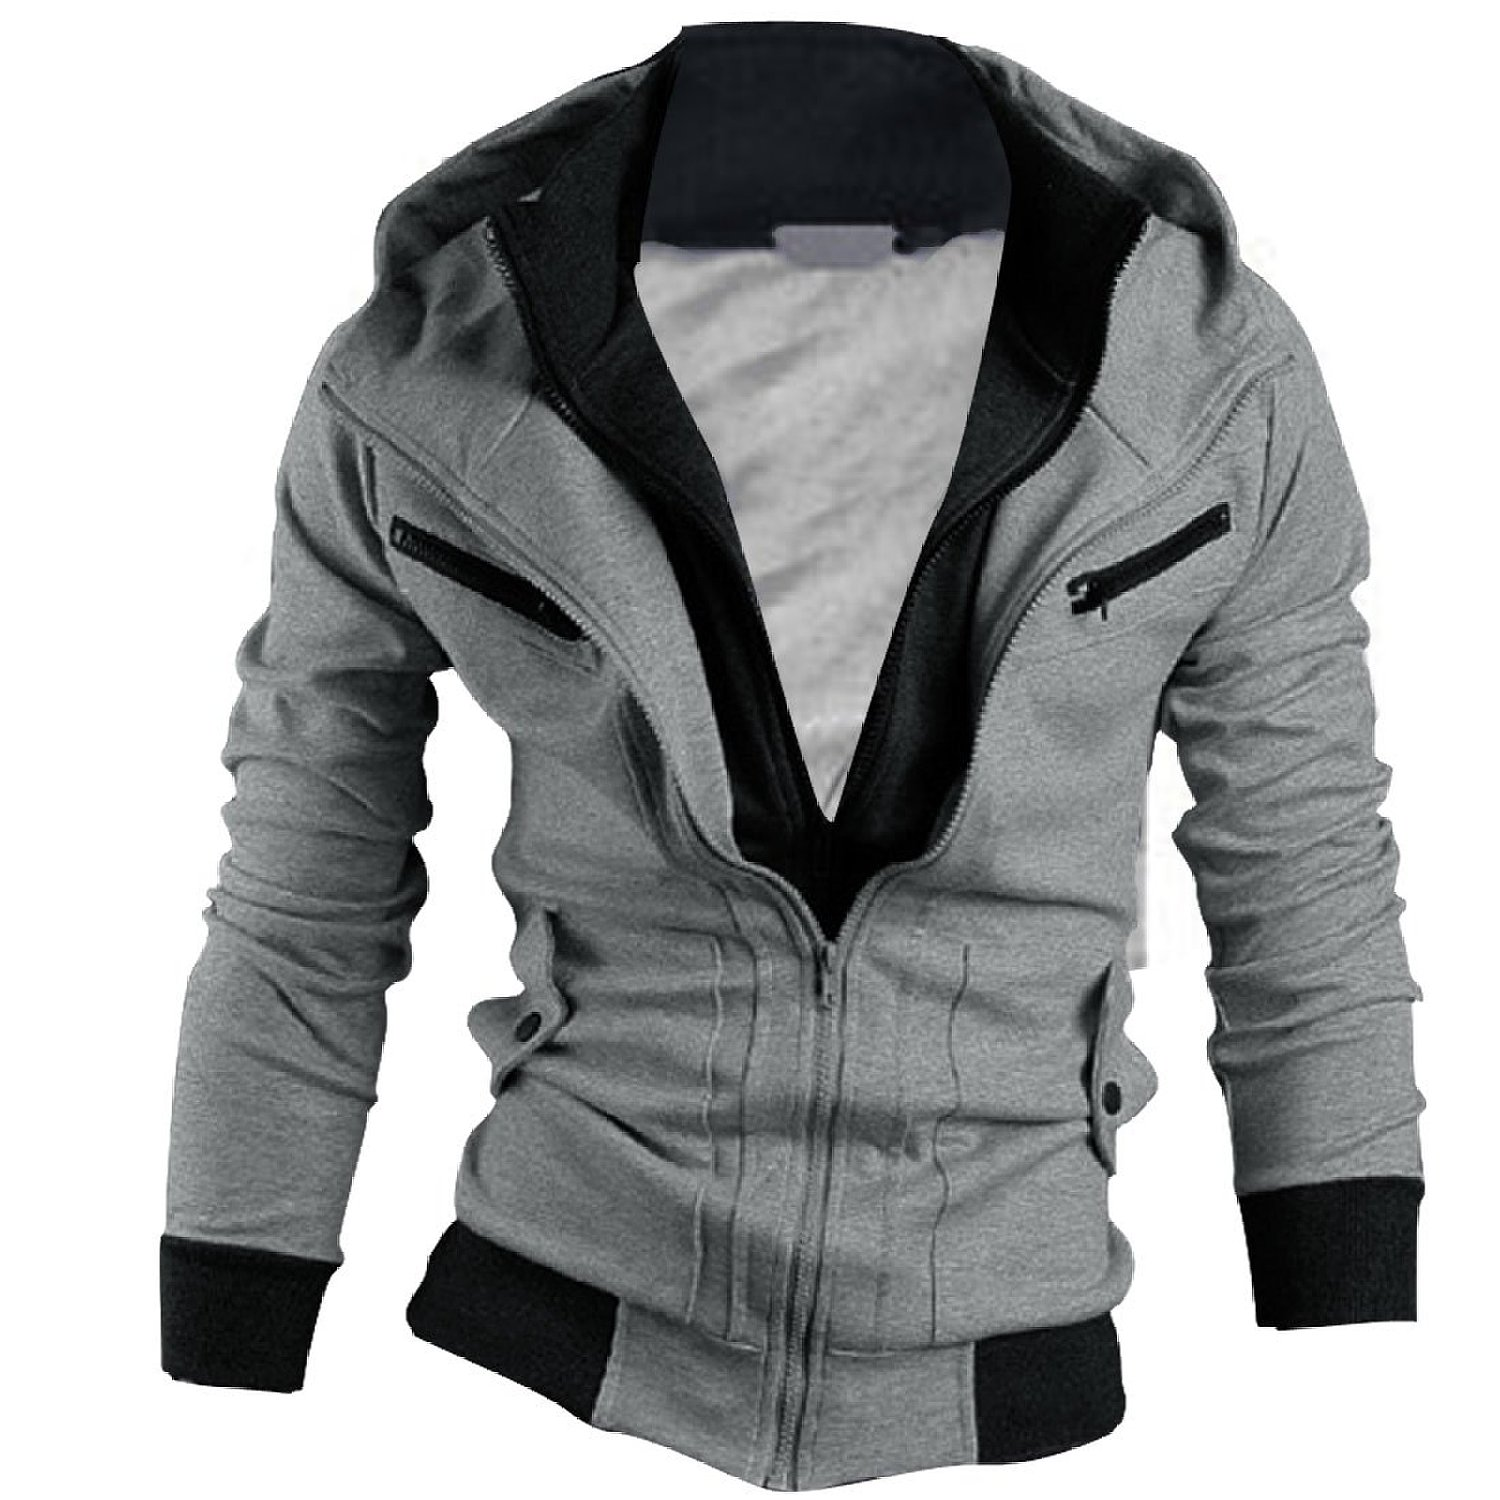 Cool Zip Up Hoodies For Men Photo Album - Bellersfashion